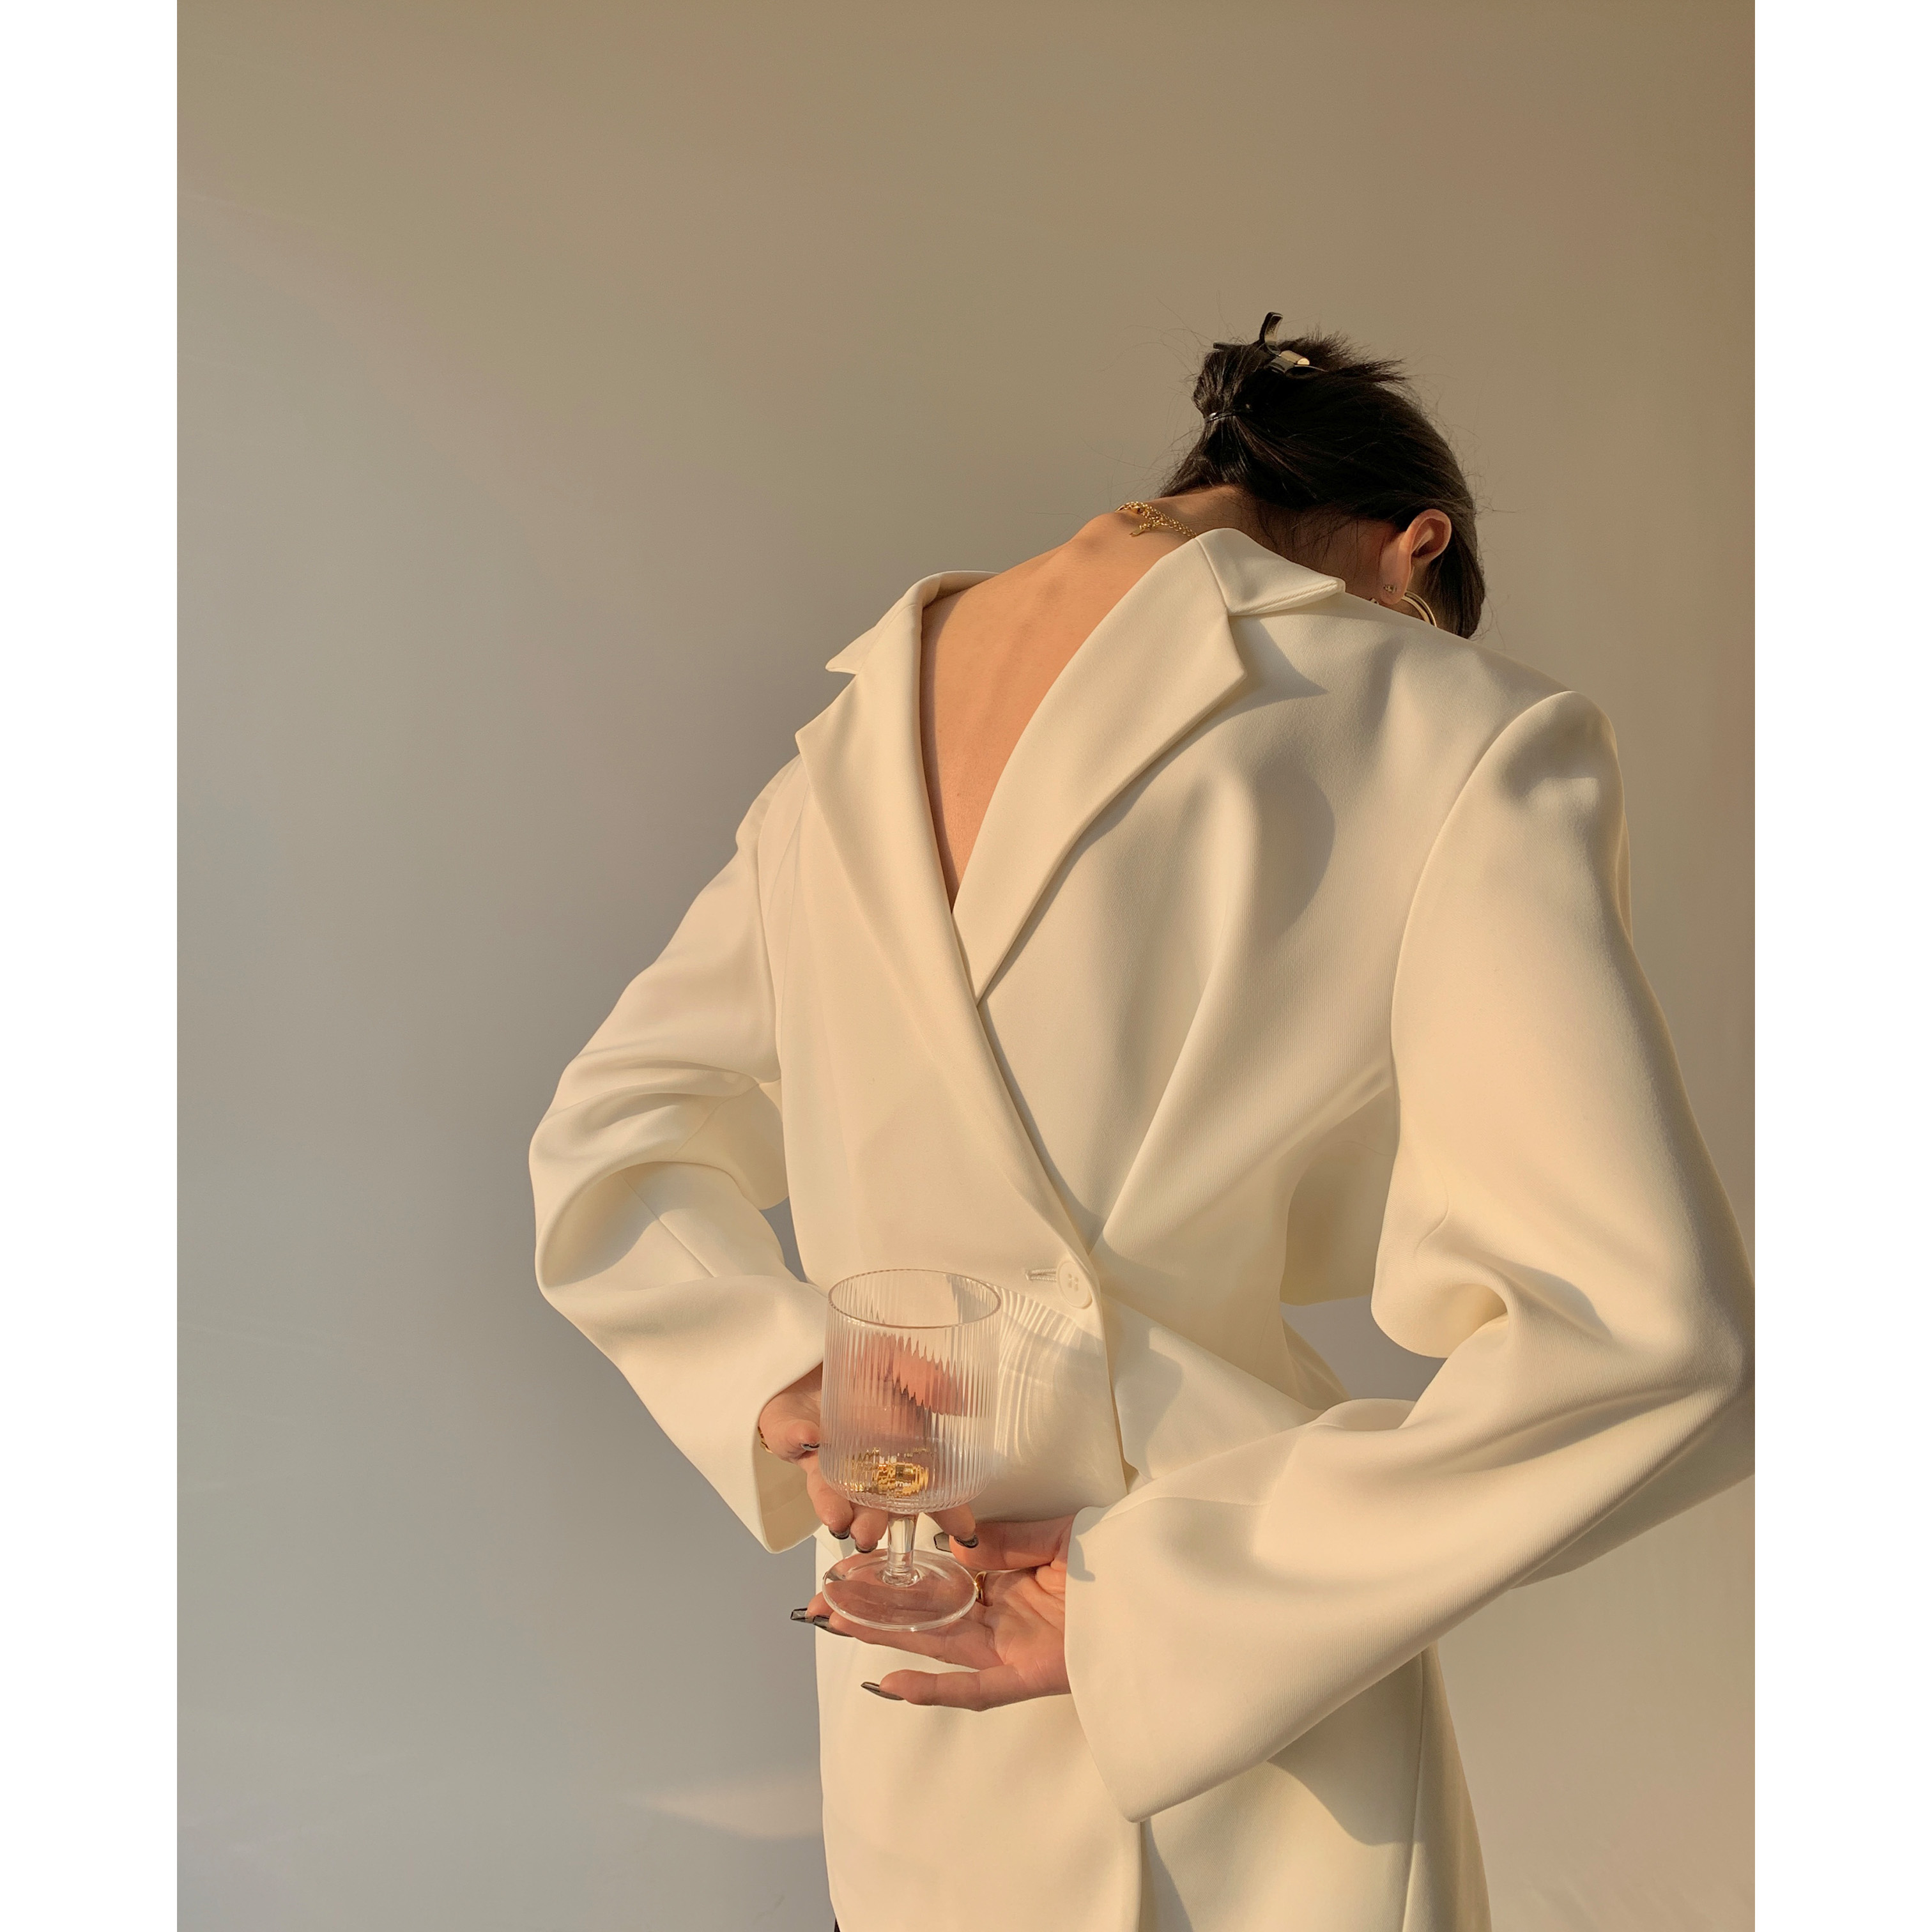 PAPERLLL high-end design sense white suit jacket female spring autumn fried street new temperament casual suit top